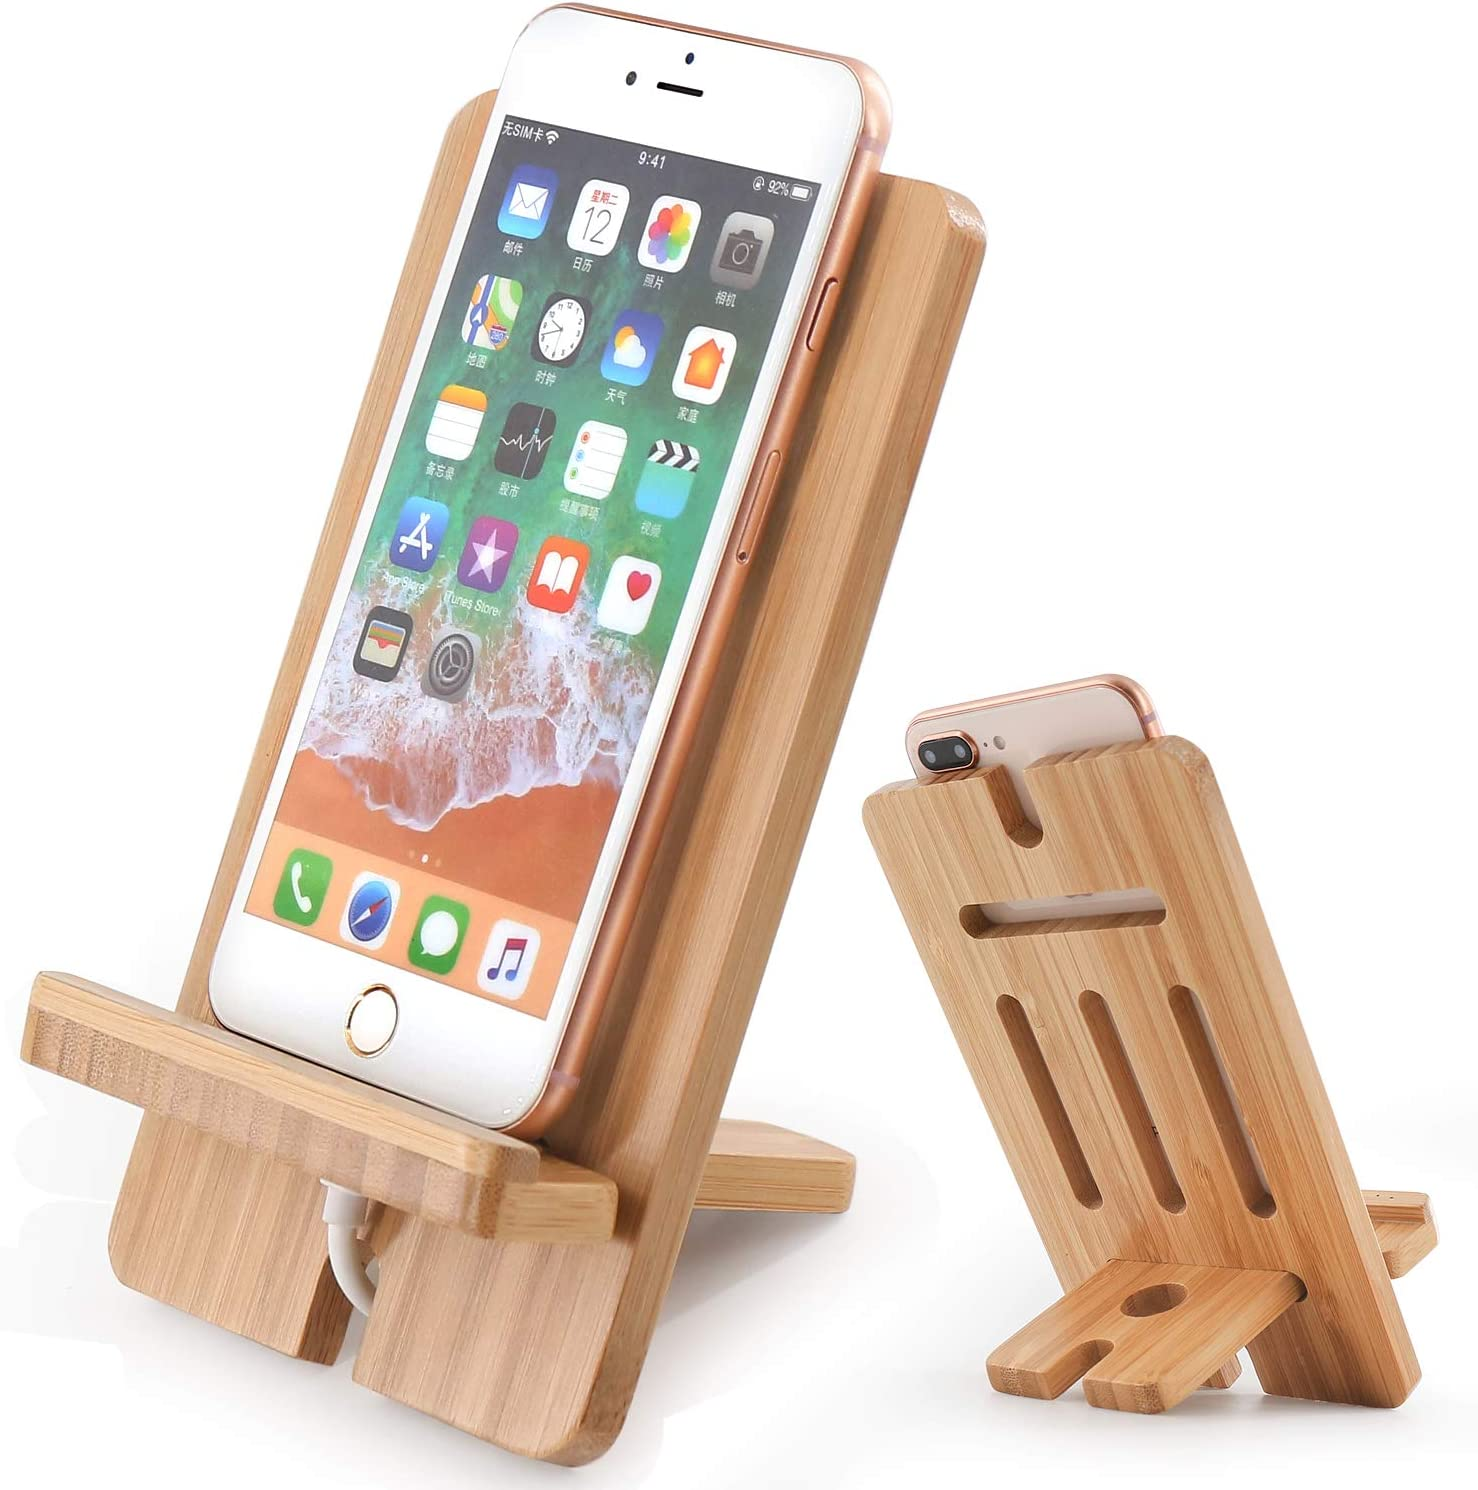 Cell Phone Tablet Stand, Bamboo Wooden Smart Phone Desktop Charging Dock Holder Compatible with Pad, Phone 8 Plus X XS Max XR, All iOS & Android Phone, Tablet - 1 Pack